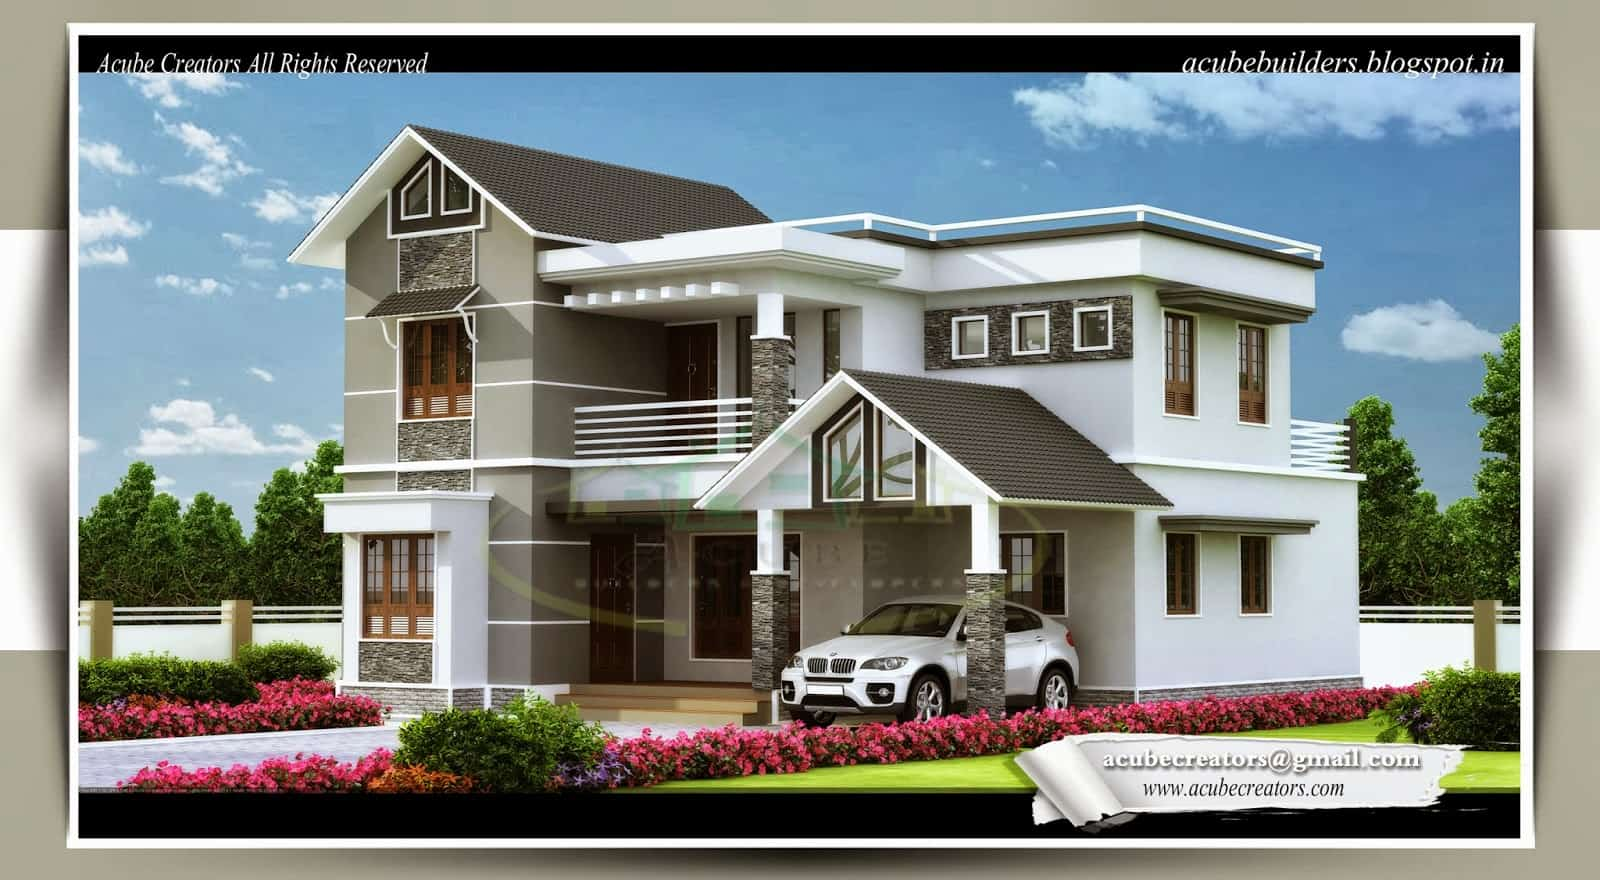 Kerala house designs memes for New home design ideas kerala